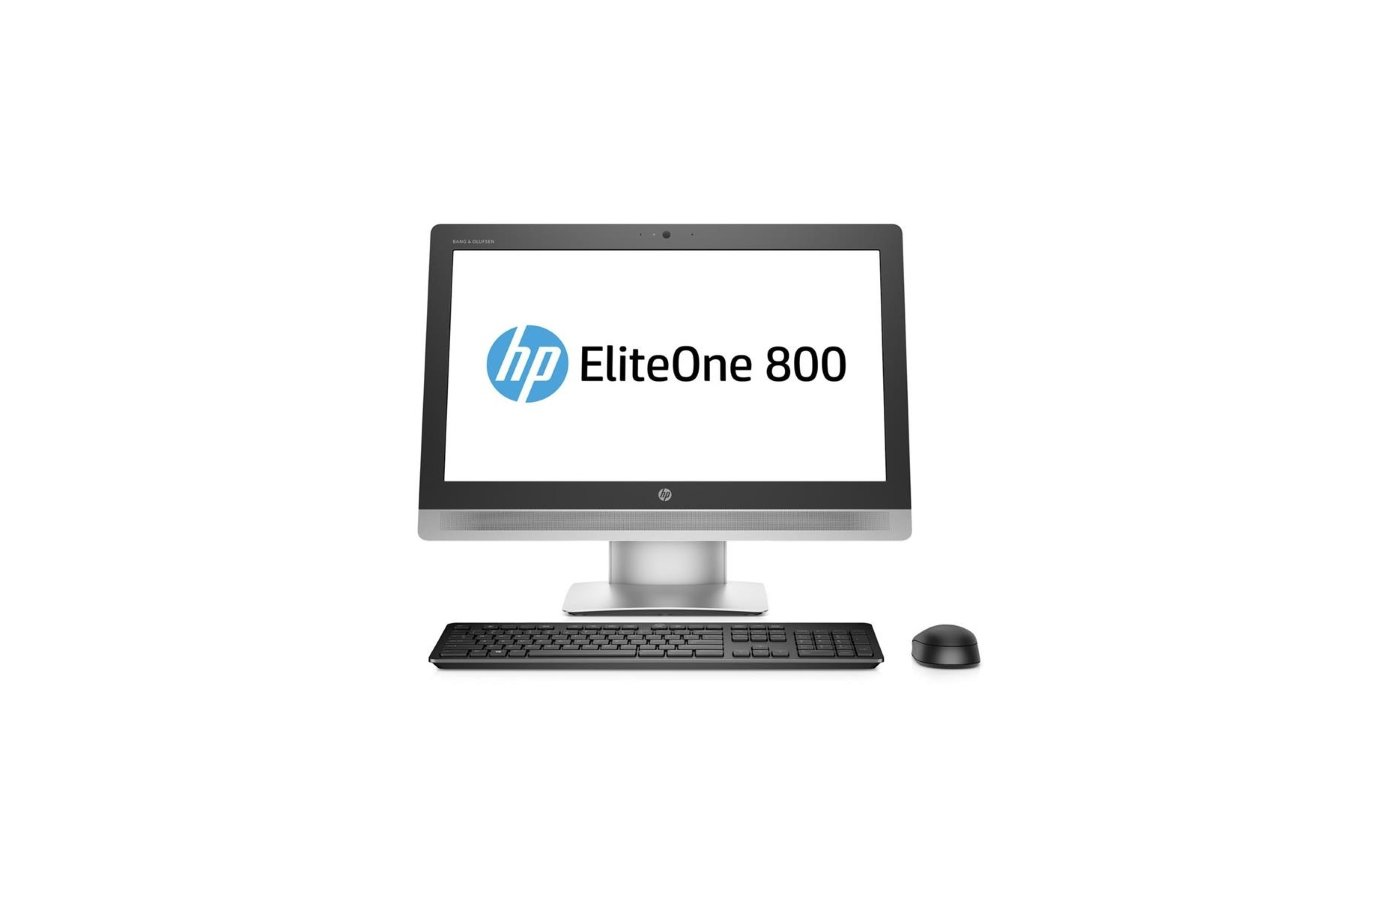 Моноблок HP EliteOne 800 G2 /V6K51EA/